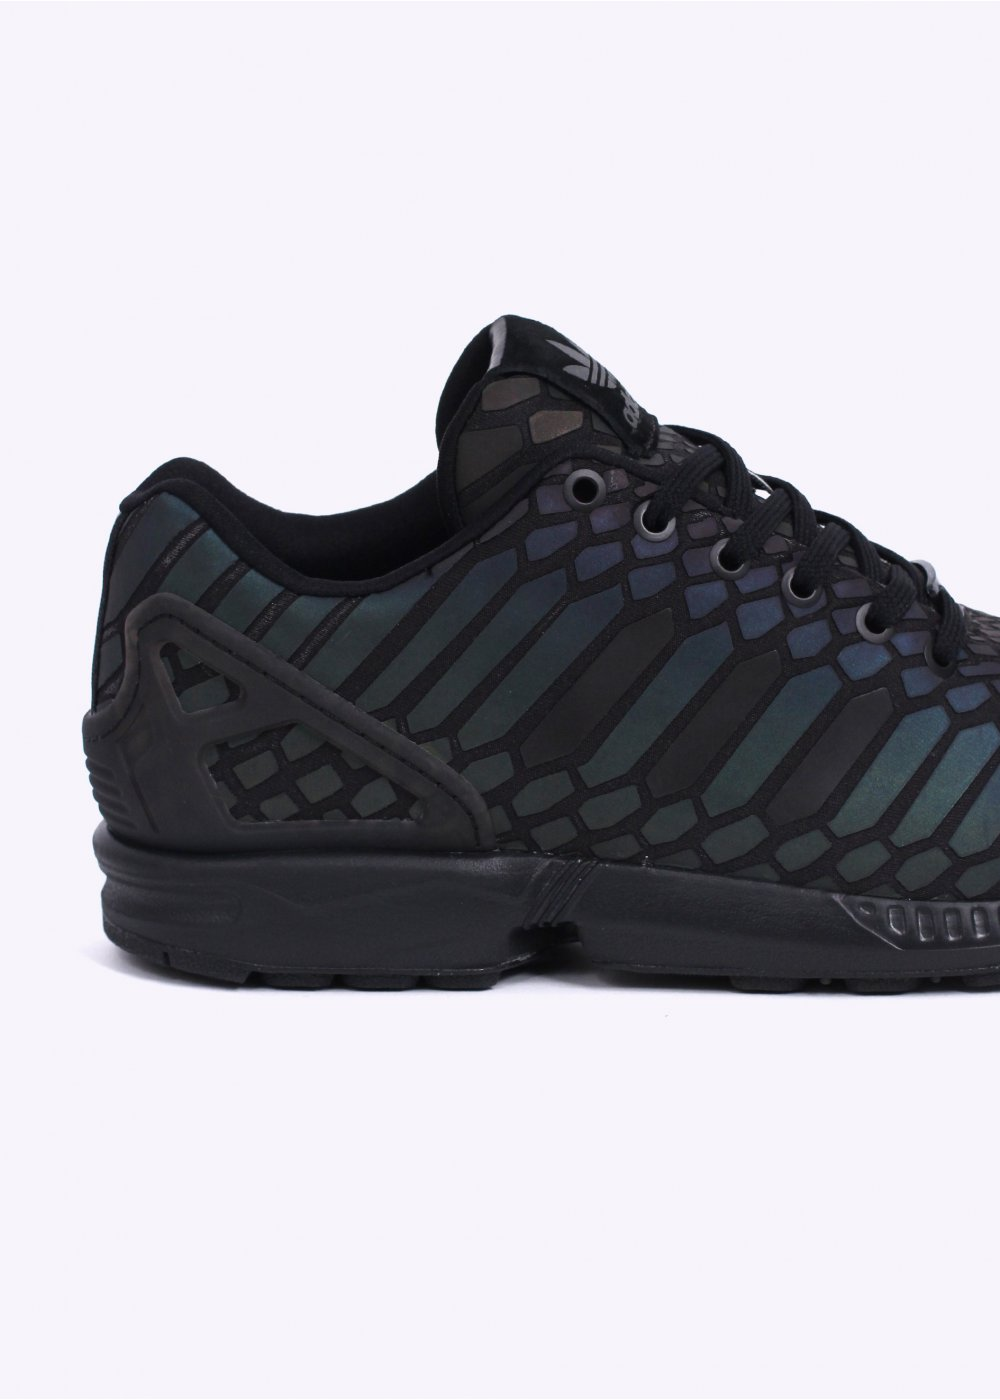 quality design b2bf8 cd3b7 adidas Originals Footwear ZX Flux Xeno - Black / Reflective